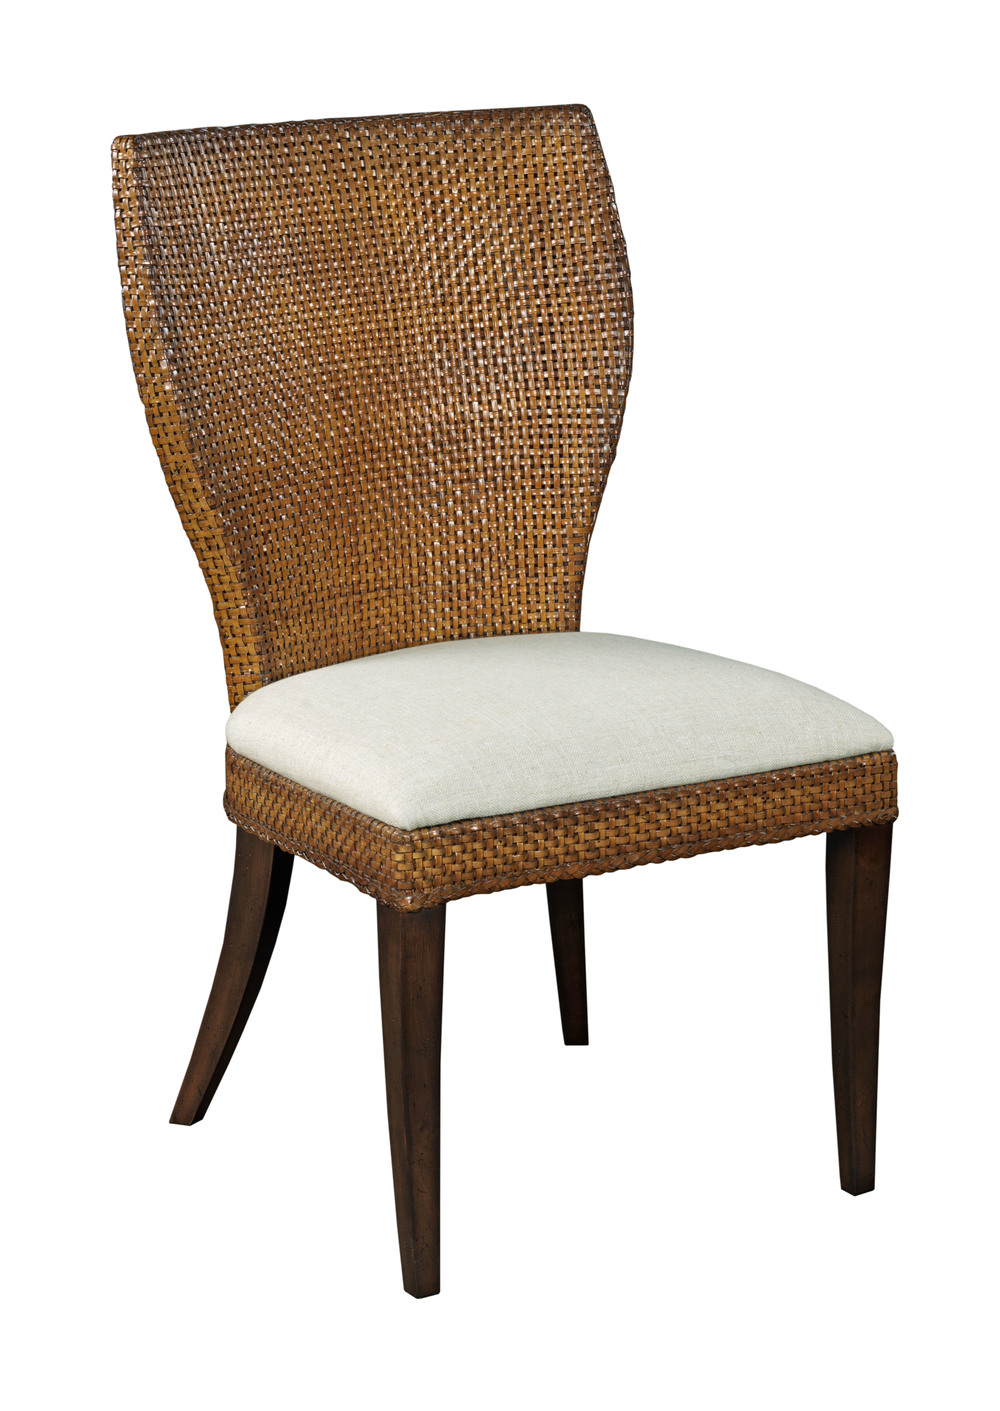 Woodbridge Furniture Company - Kate Dining Chair